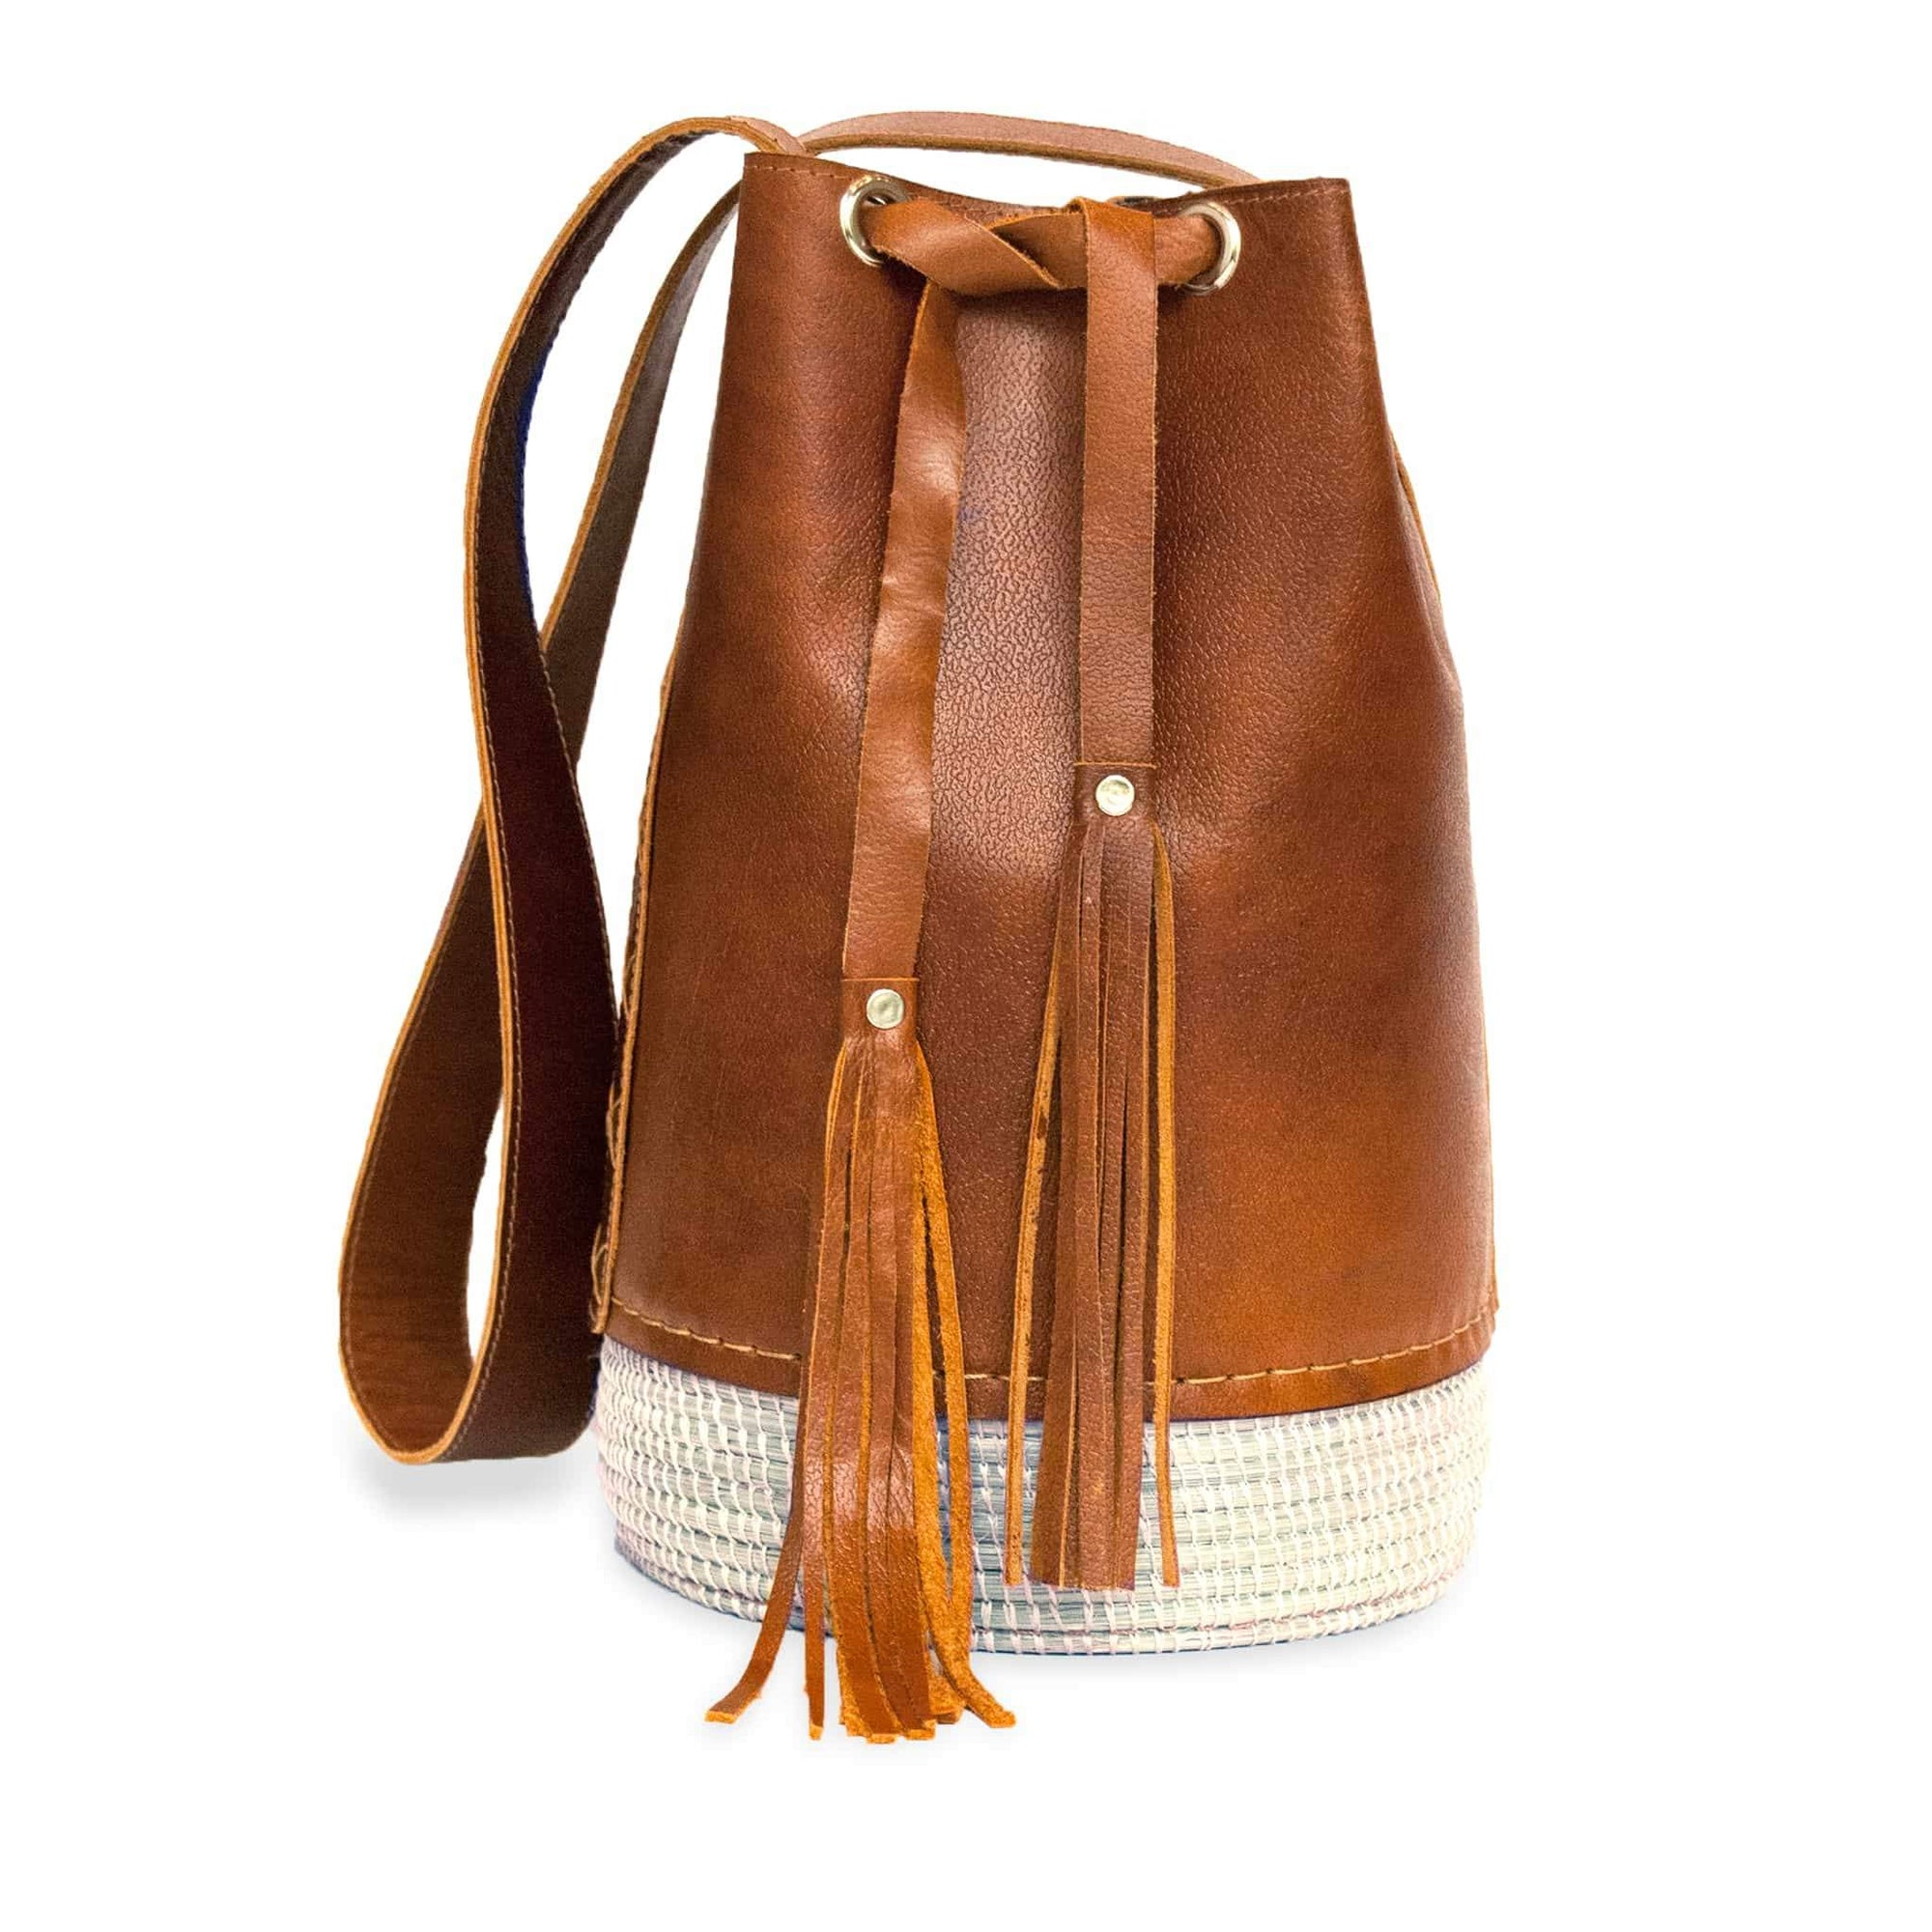 Rosa Bag | Accessories | ABURY | [product_tag] - Fair Bazaar Ethical Living